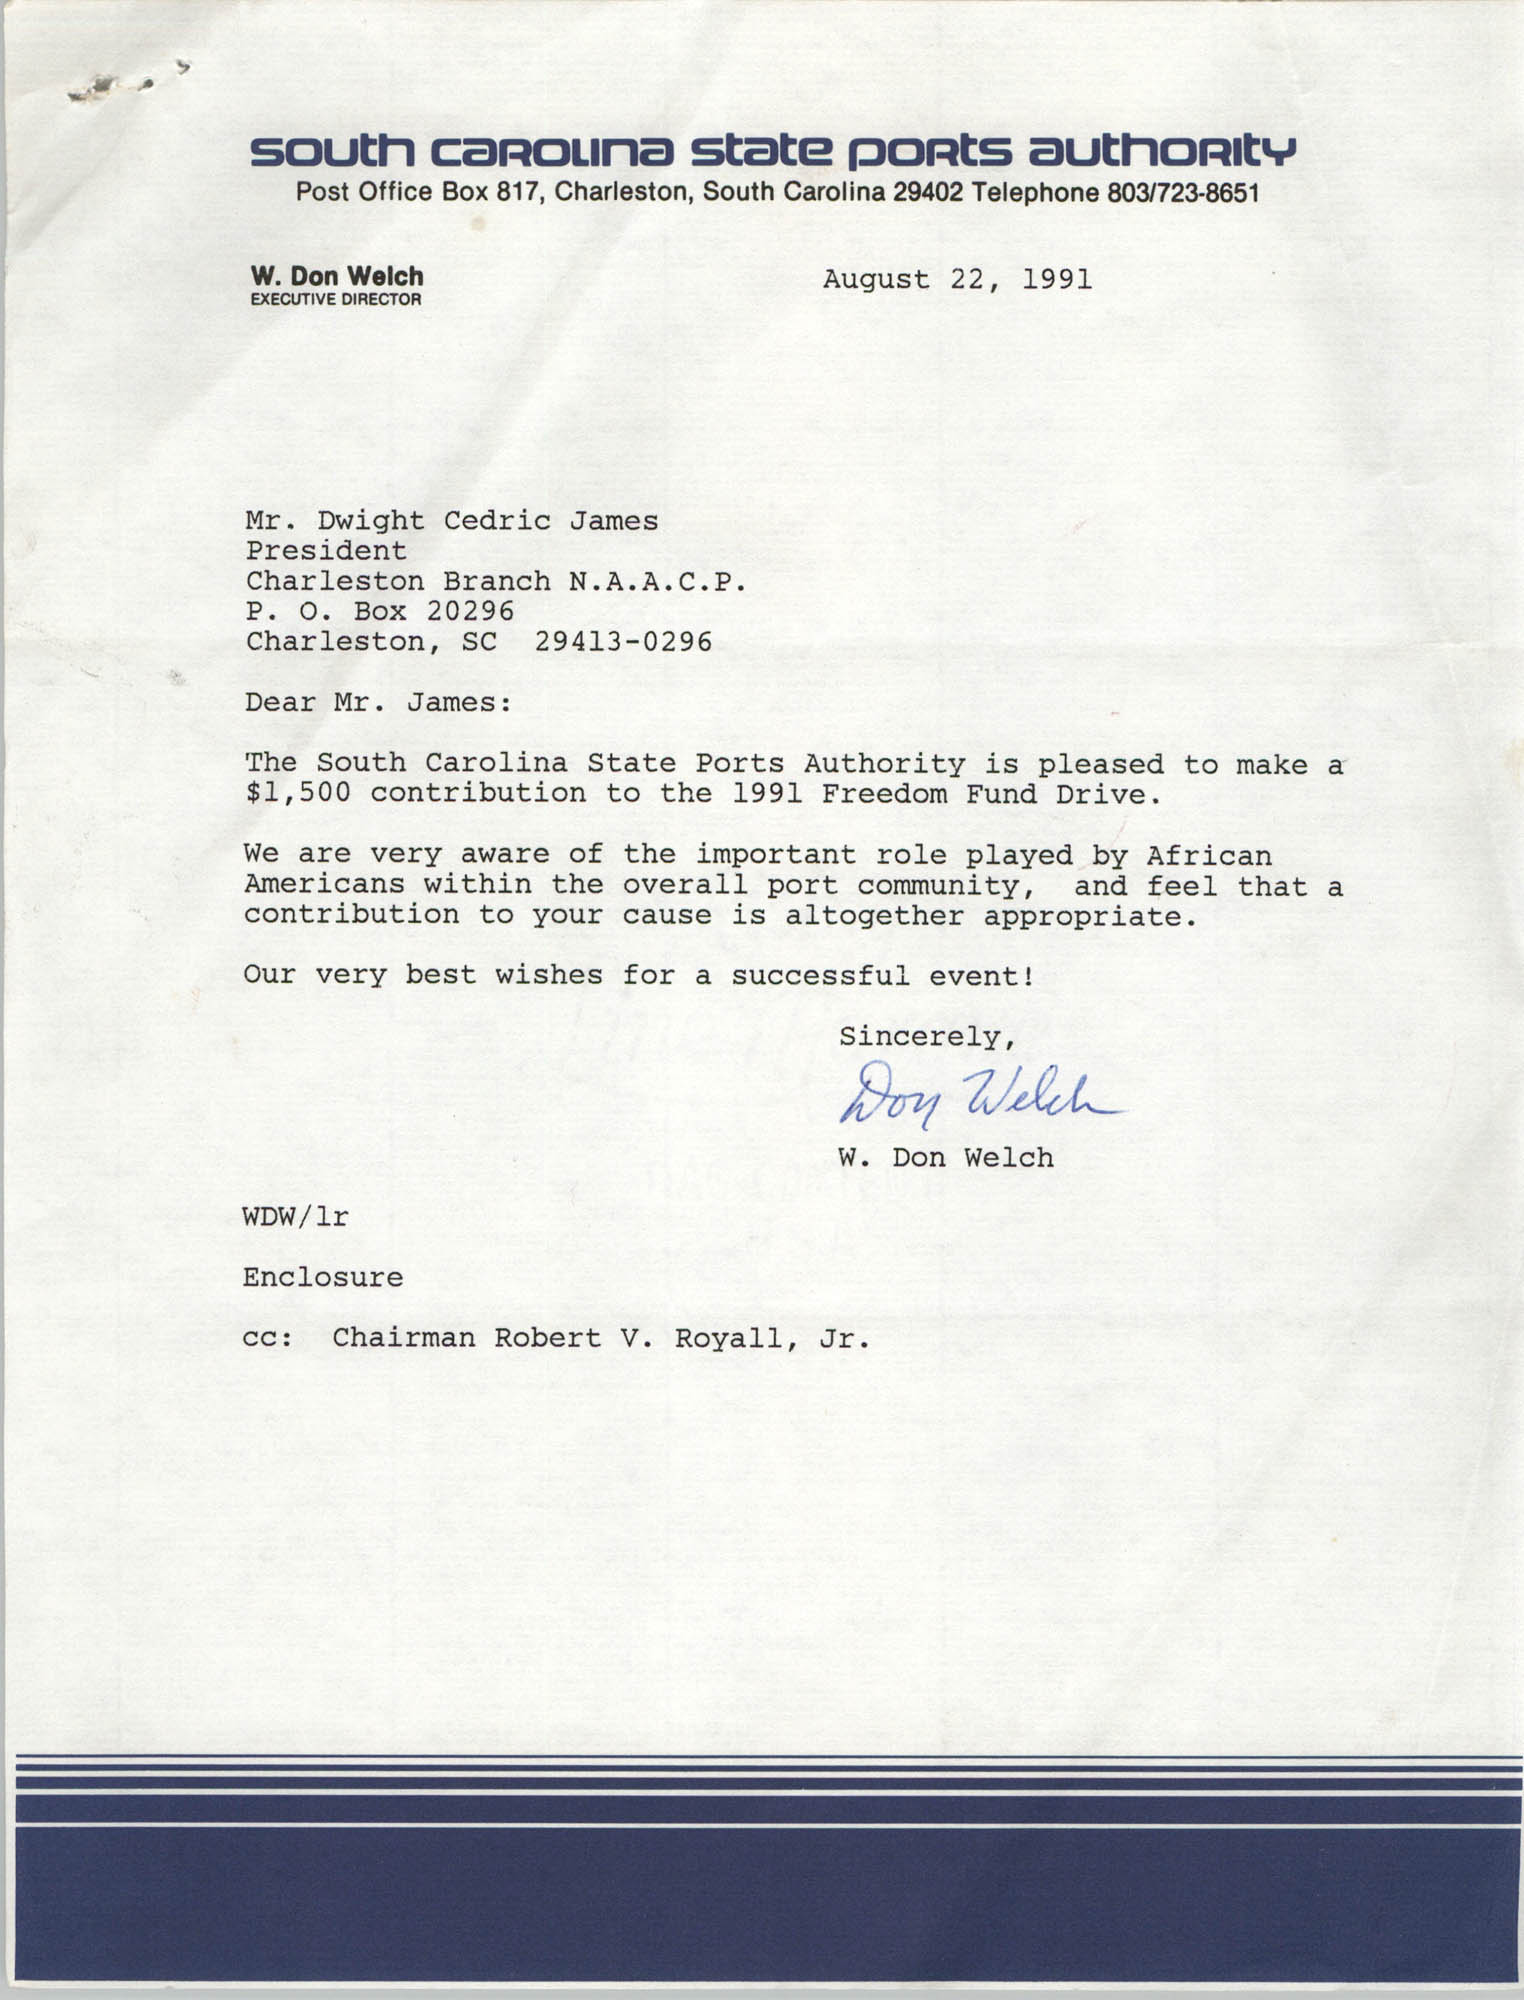 Letter from W. Don Welch to Dwight Cedric James, August 22, 1991